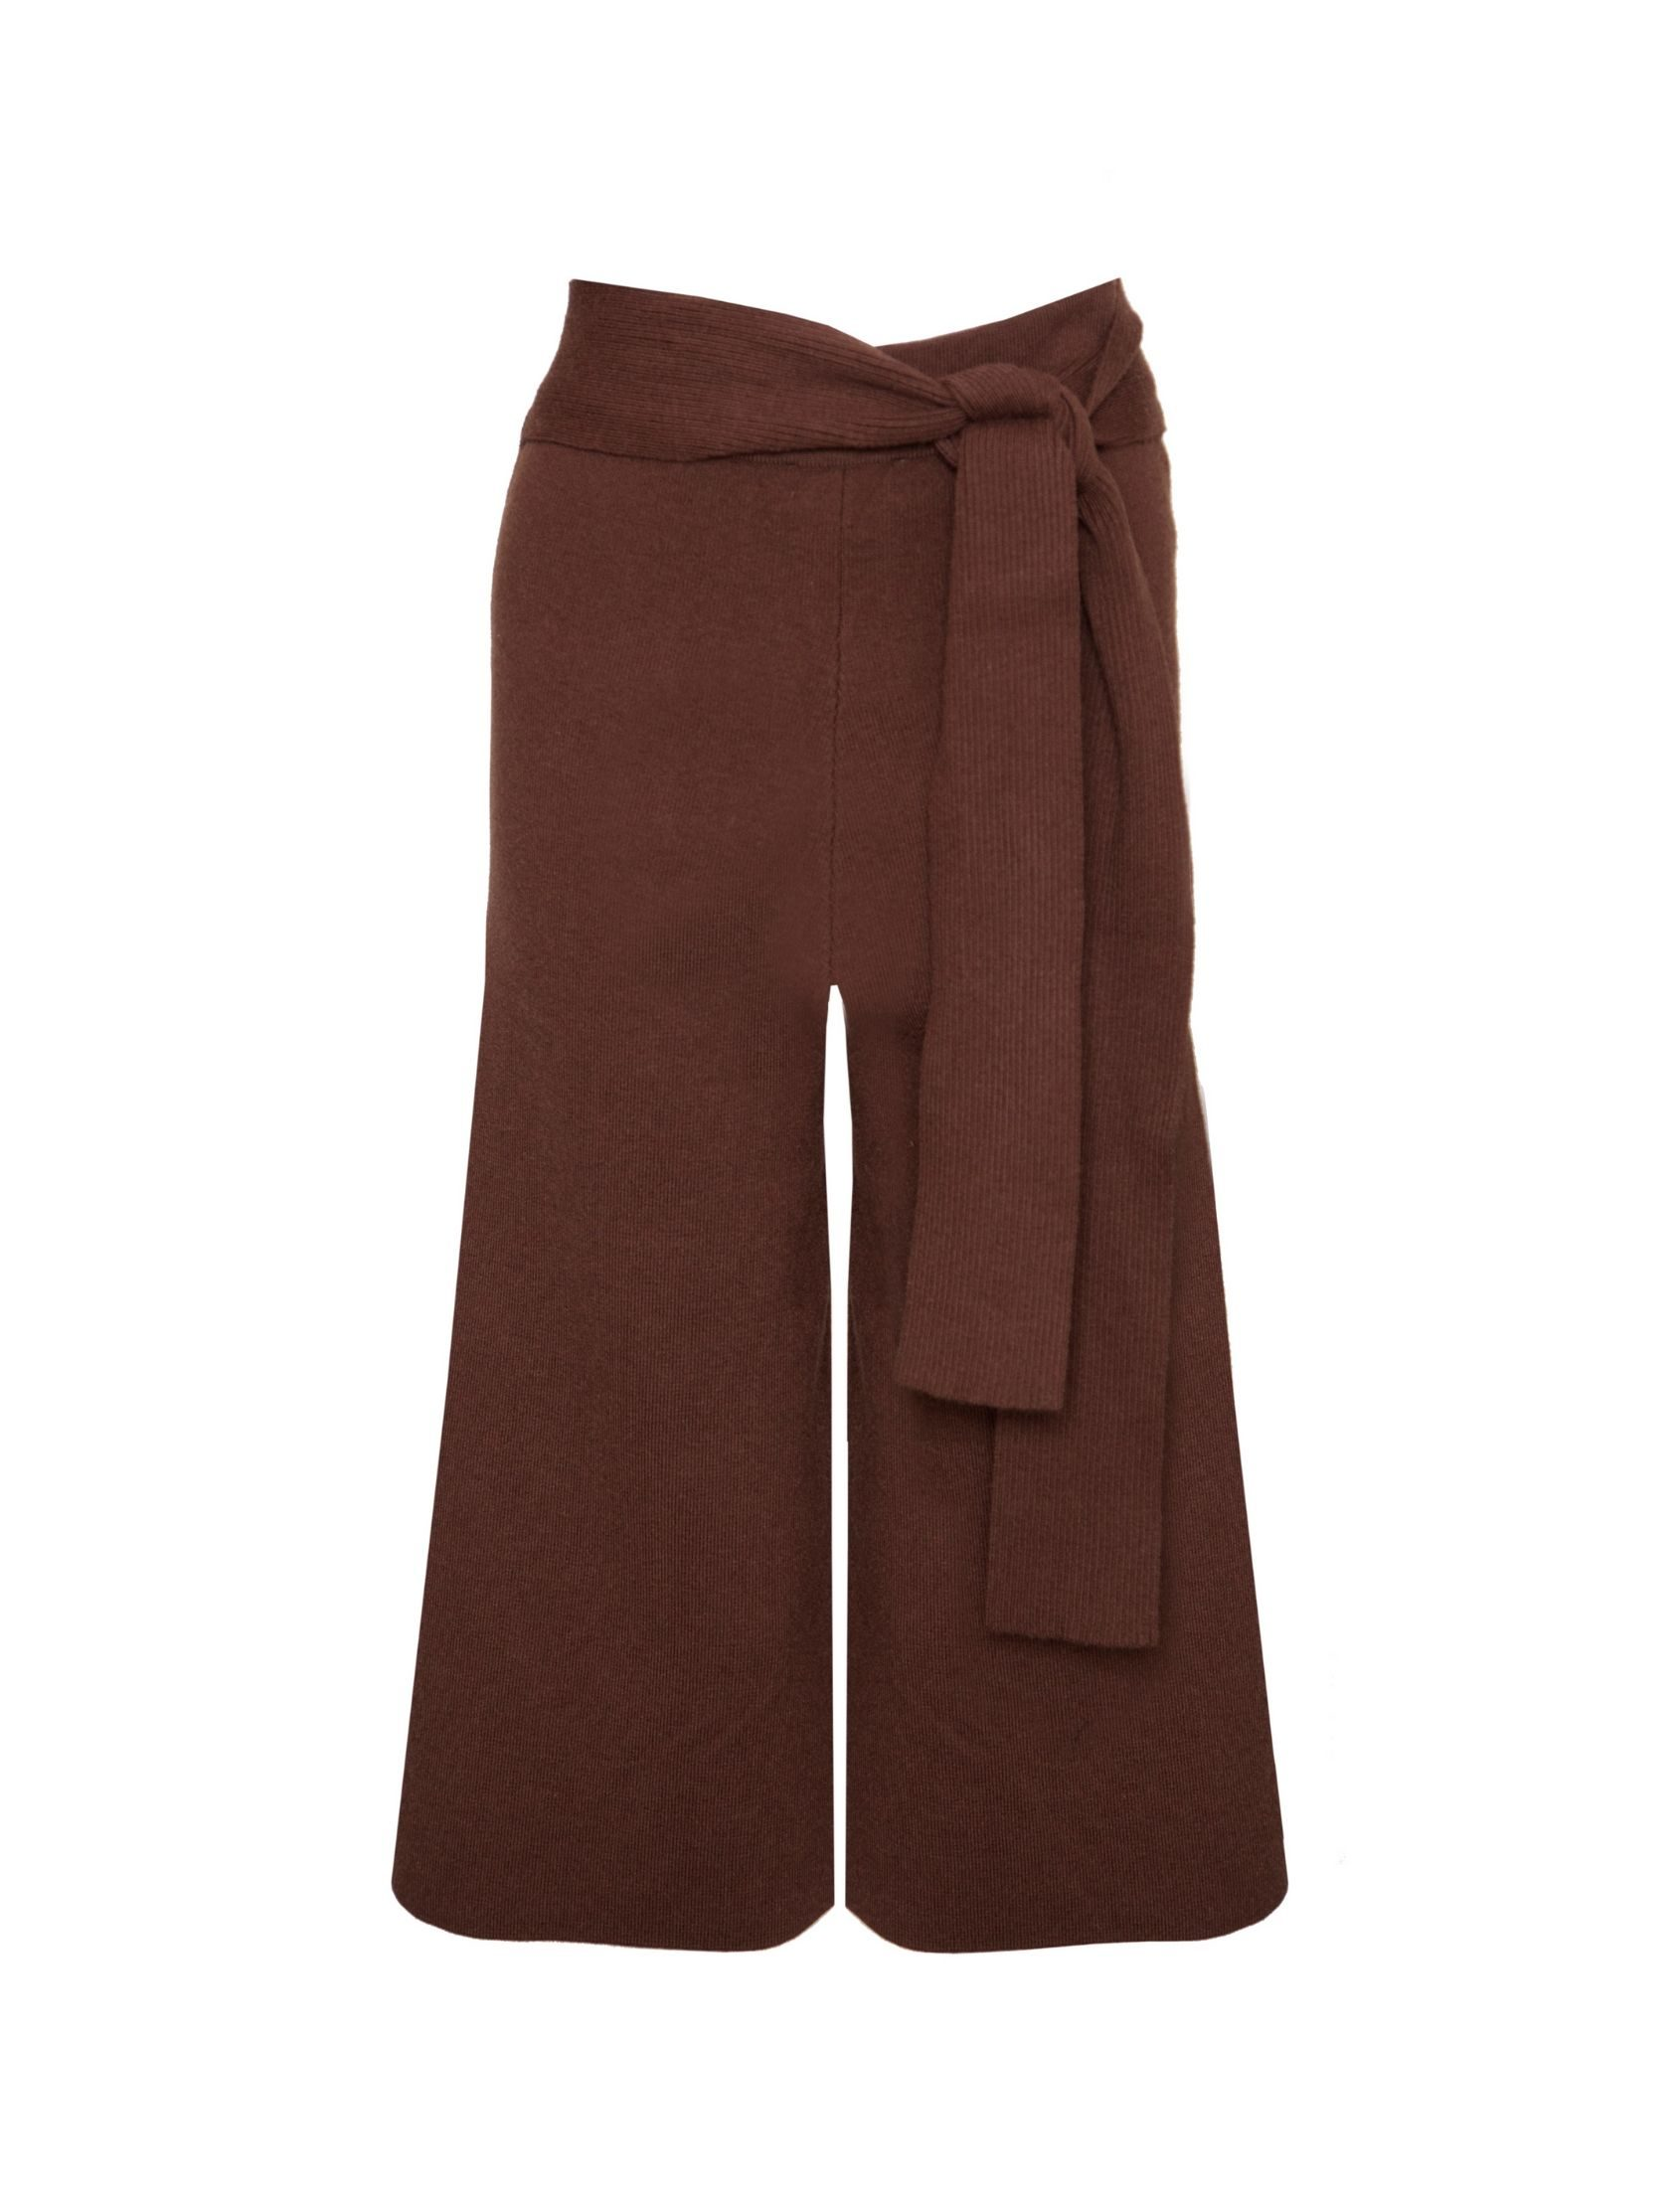 pantalón pantalon_WYTTE_jovonna_london_punto_marrón